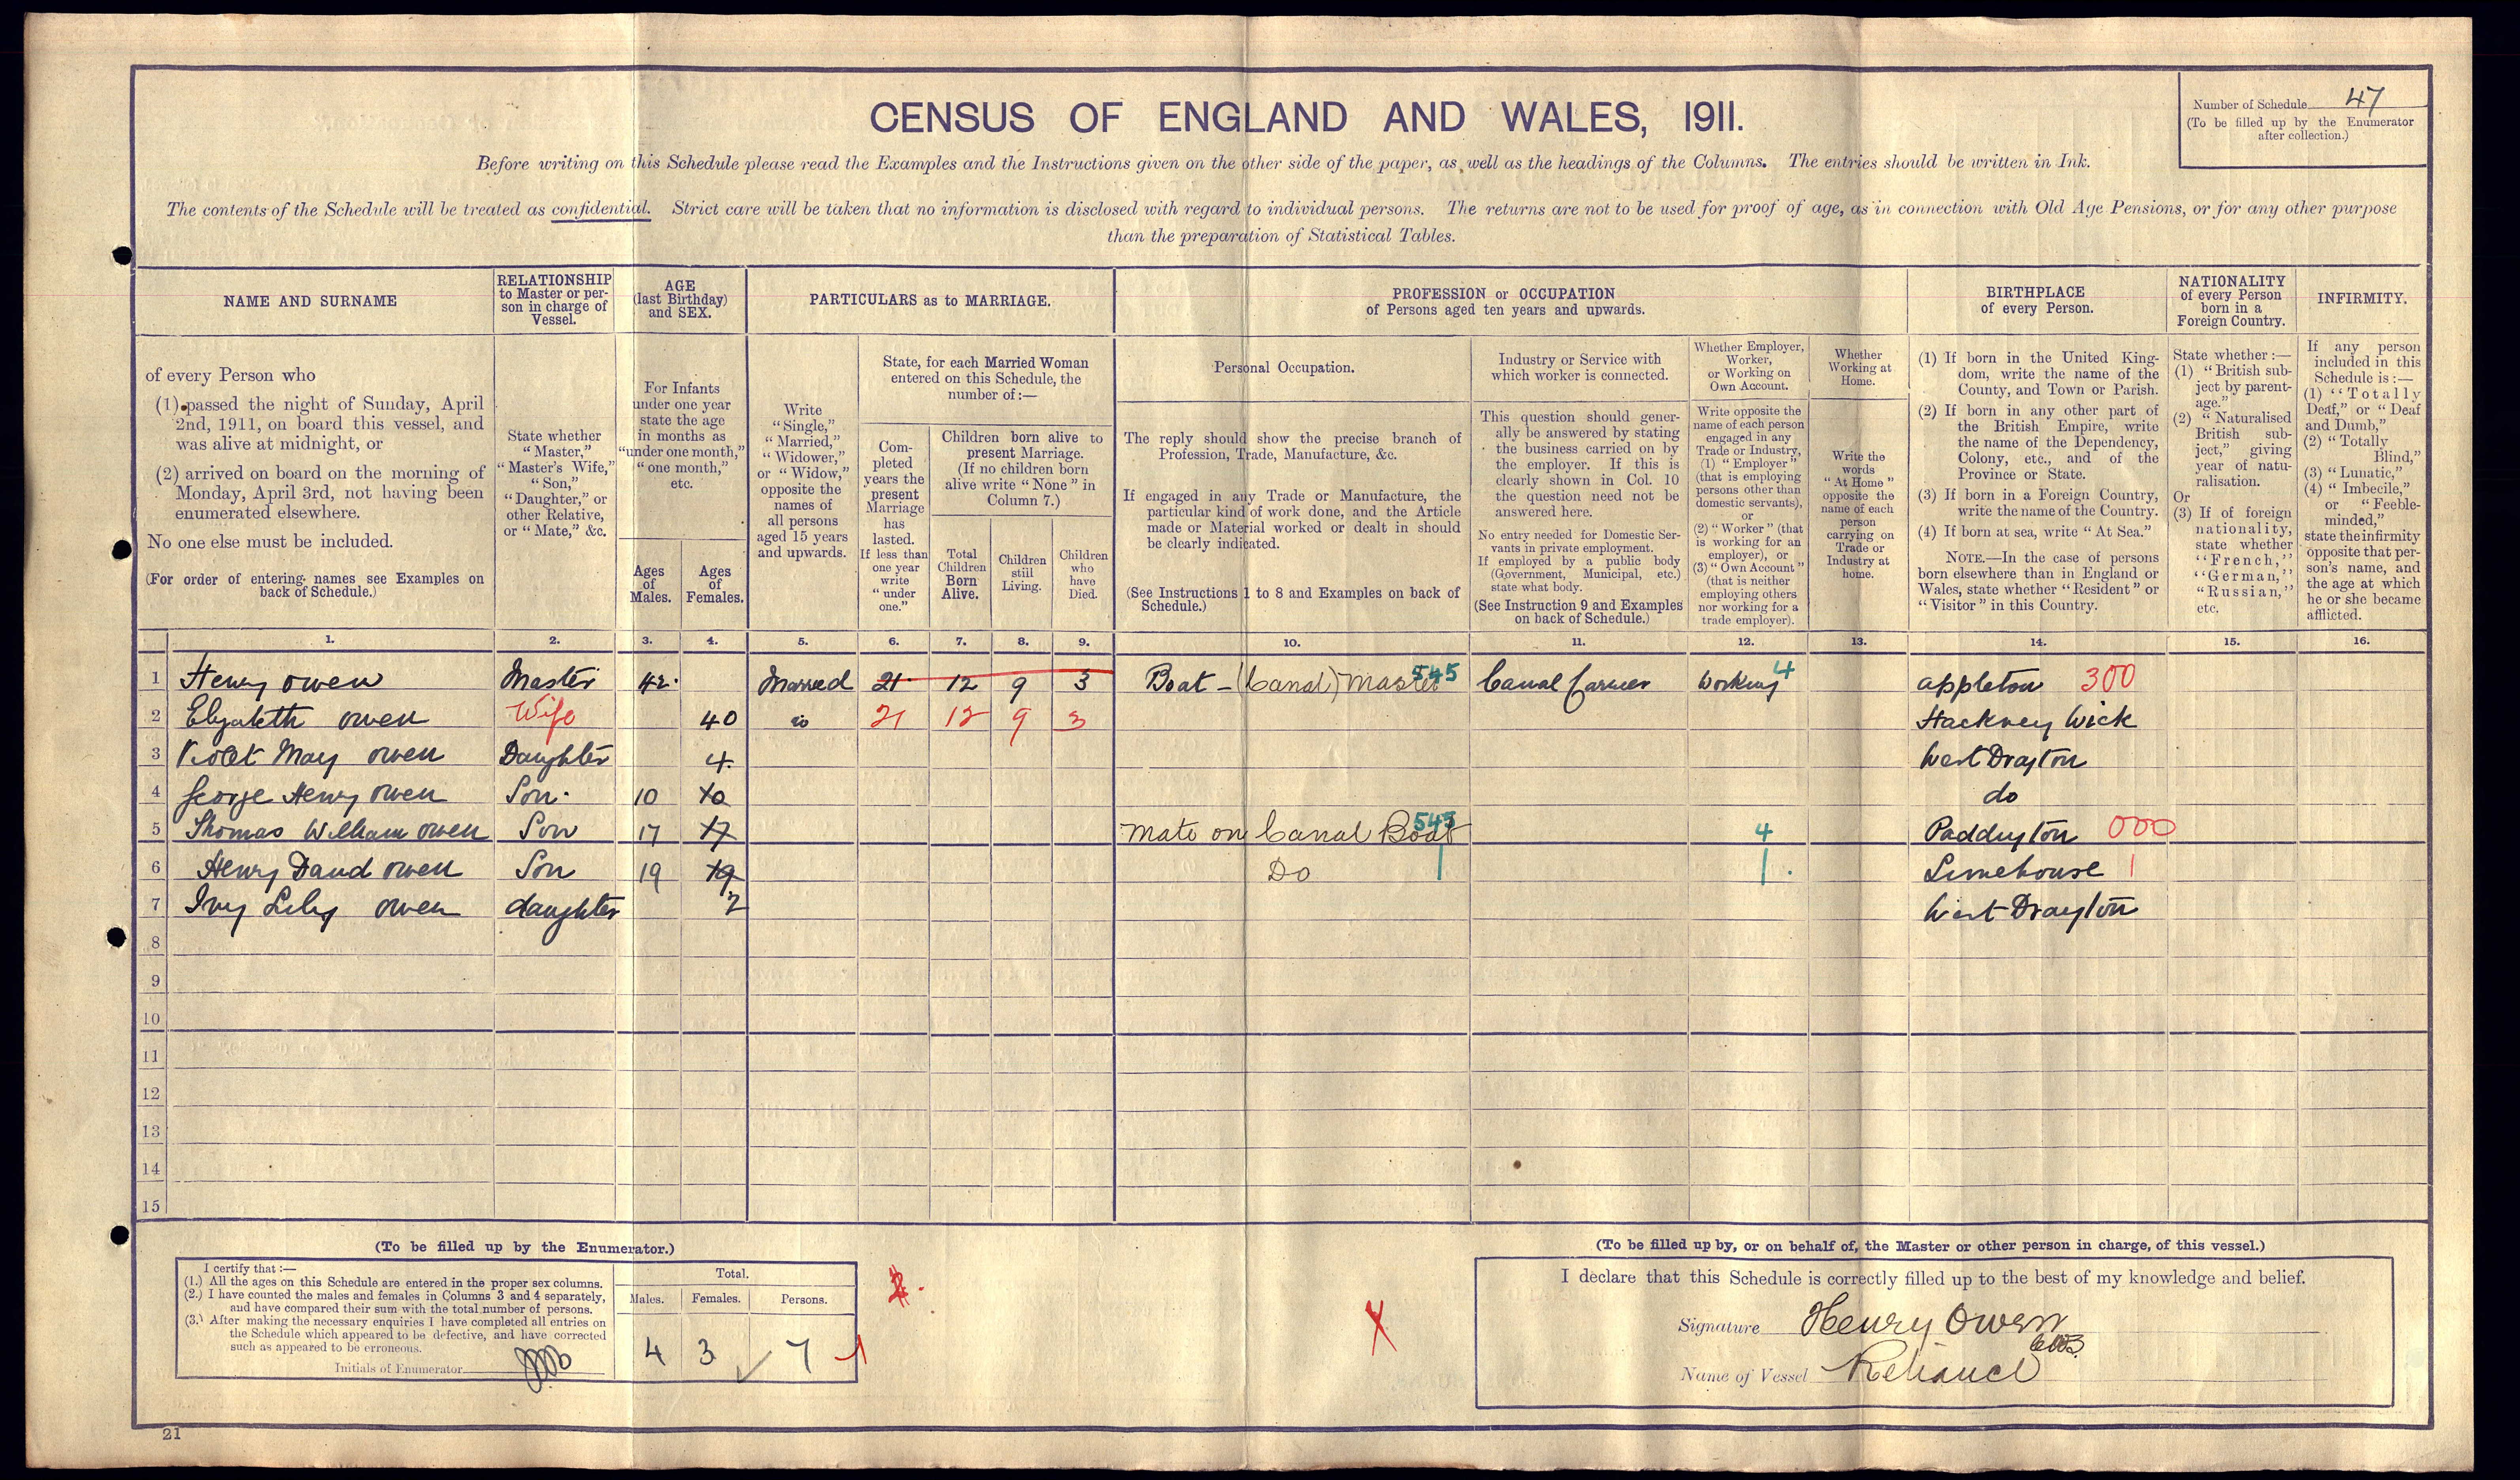 1911 England Census Record for Henry Hubert Owen